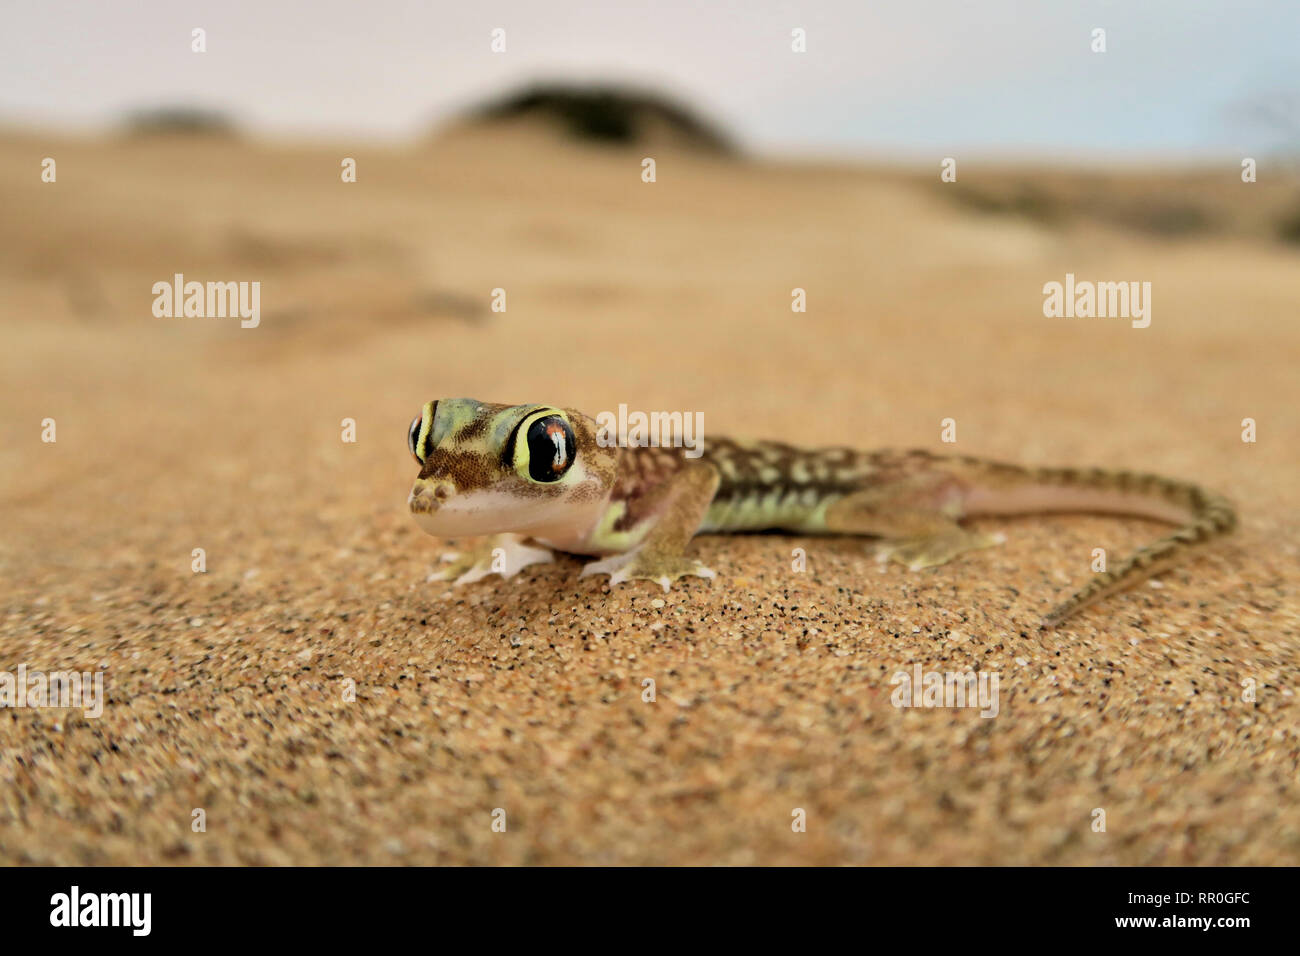 zoology, reptile (Reptilia), Namib sand gecko, web-footed gecko or Namib sand gecko (Pachydactylus ran, Additional-Rights-Clearance-Info-Not-Available Stock Photo